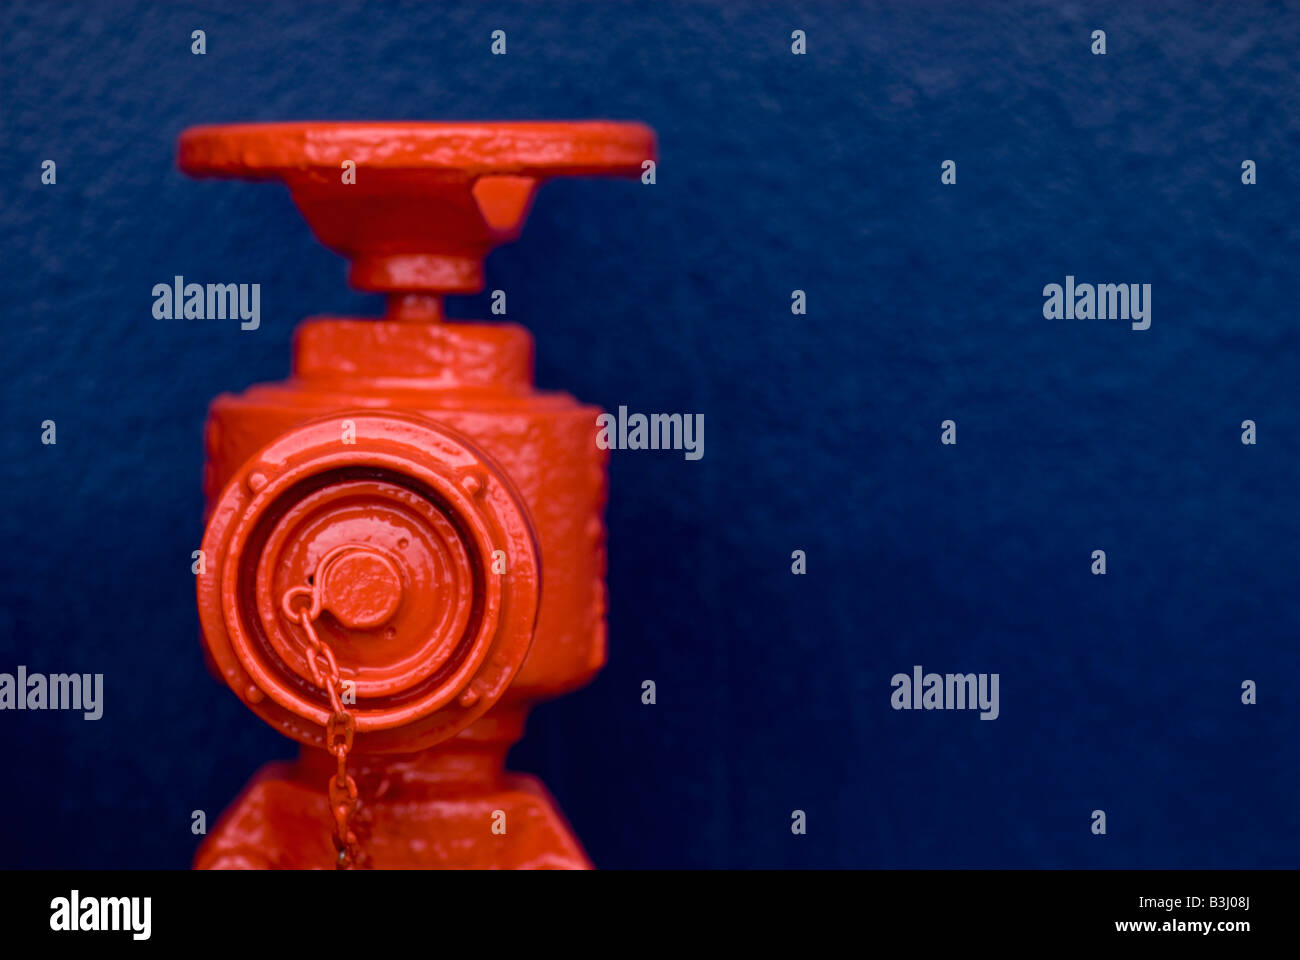 Fire Hydrant - Stock Image